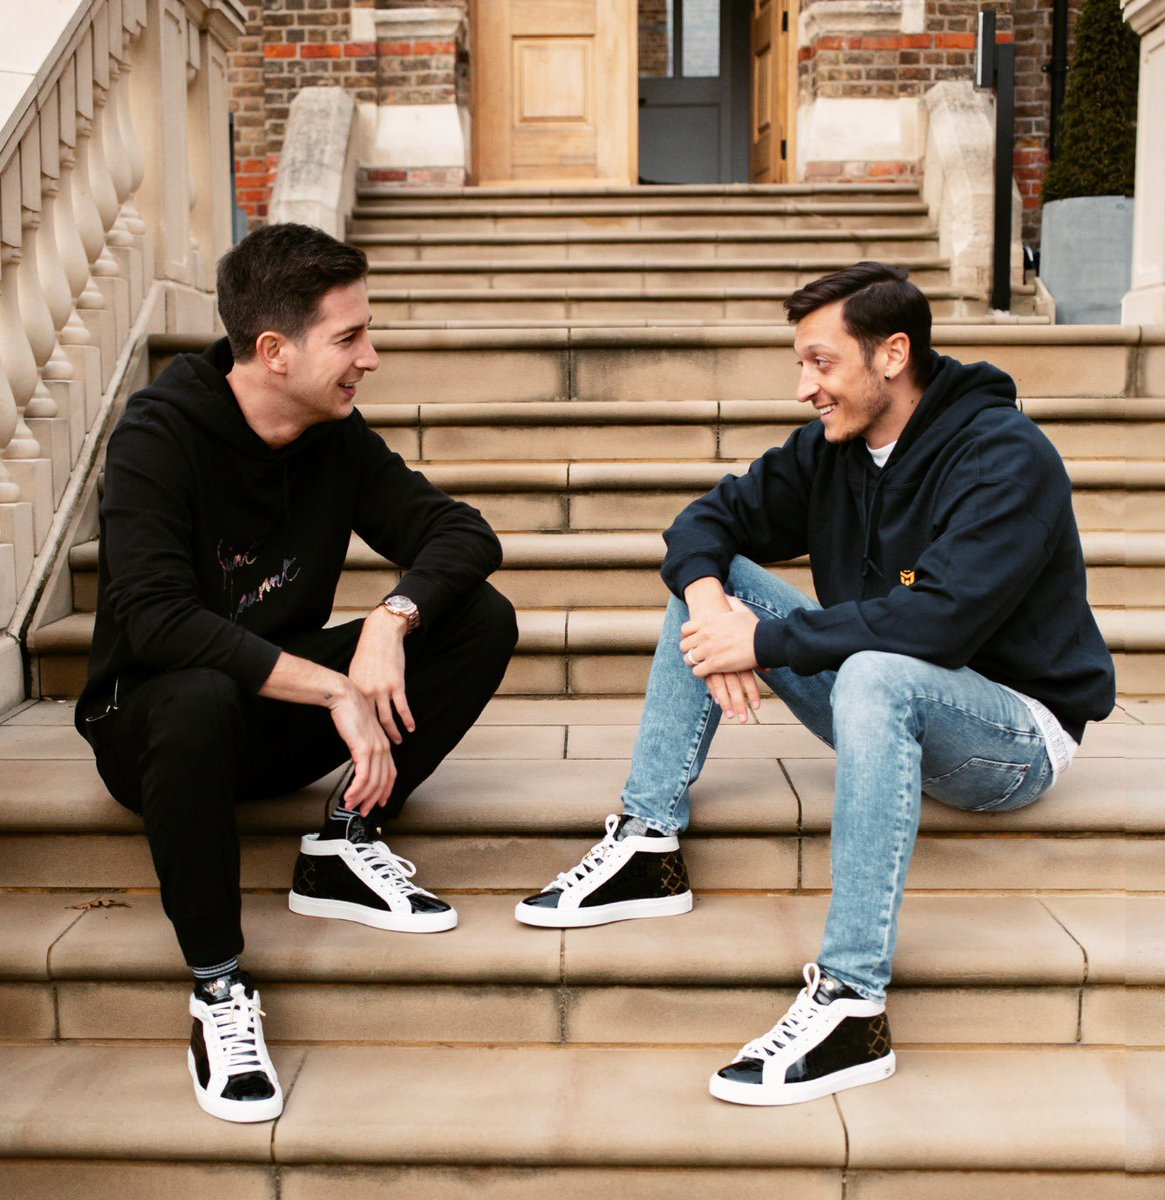 """I'm so honored to tell you that """"The Cage"""" is now available for preorder on @hideandjack website. I designed it to celebrate Mesut Özil's childhood and personal story. Me and @MesutOzil1088 decided to donate the profit to help children with digital education during Covid."""